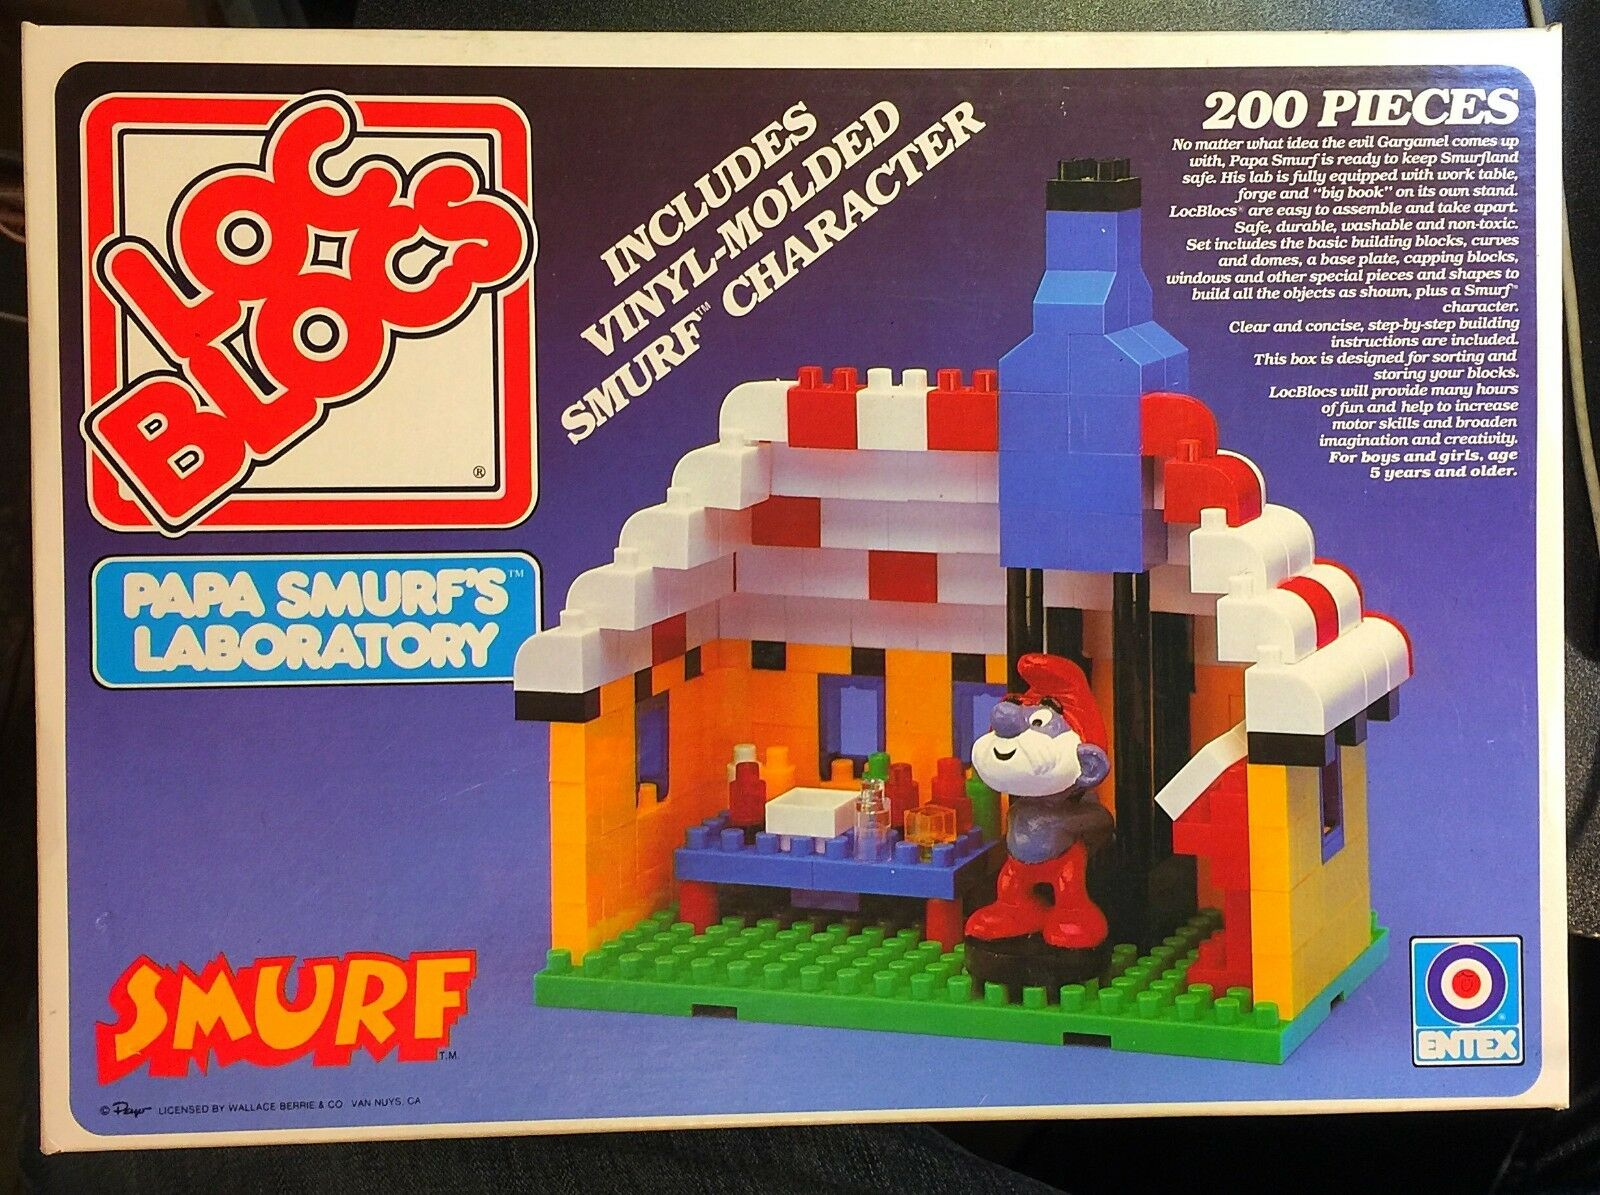 Vintage Entex Loc Blocs Papa Smurf's Laboratory Smurf with Box and Instructions